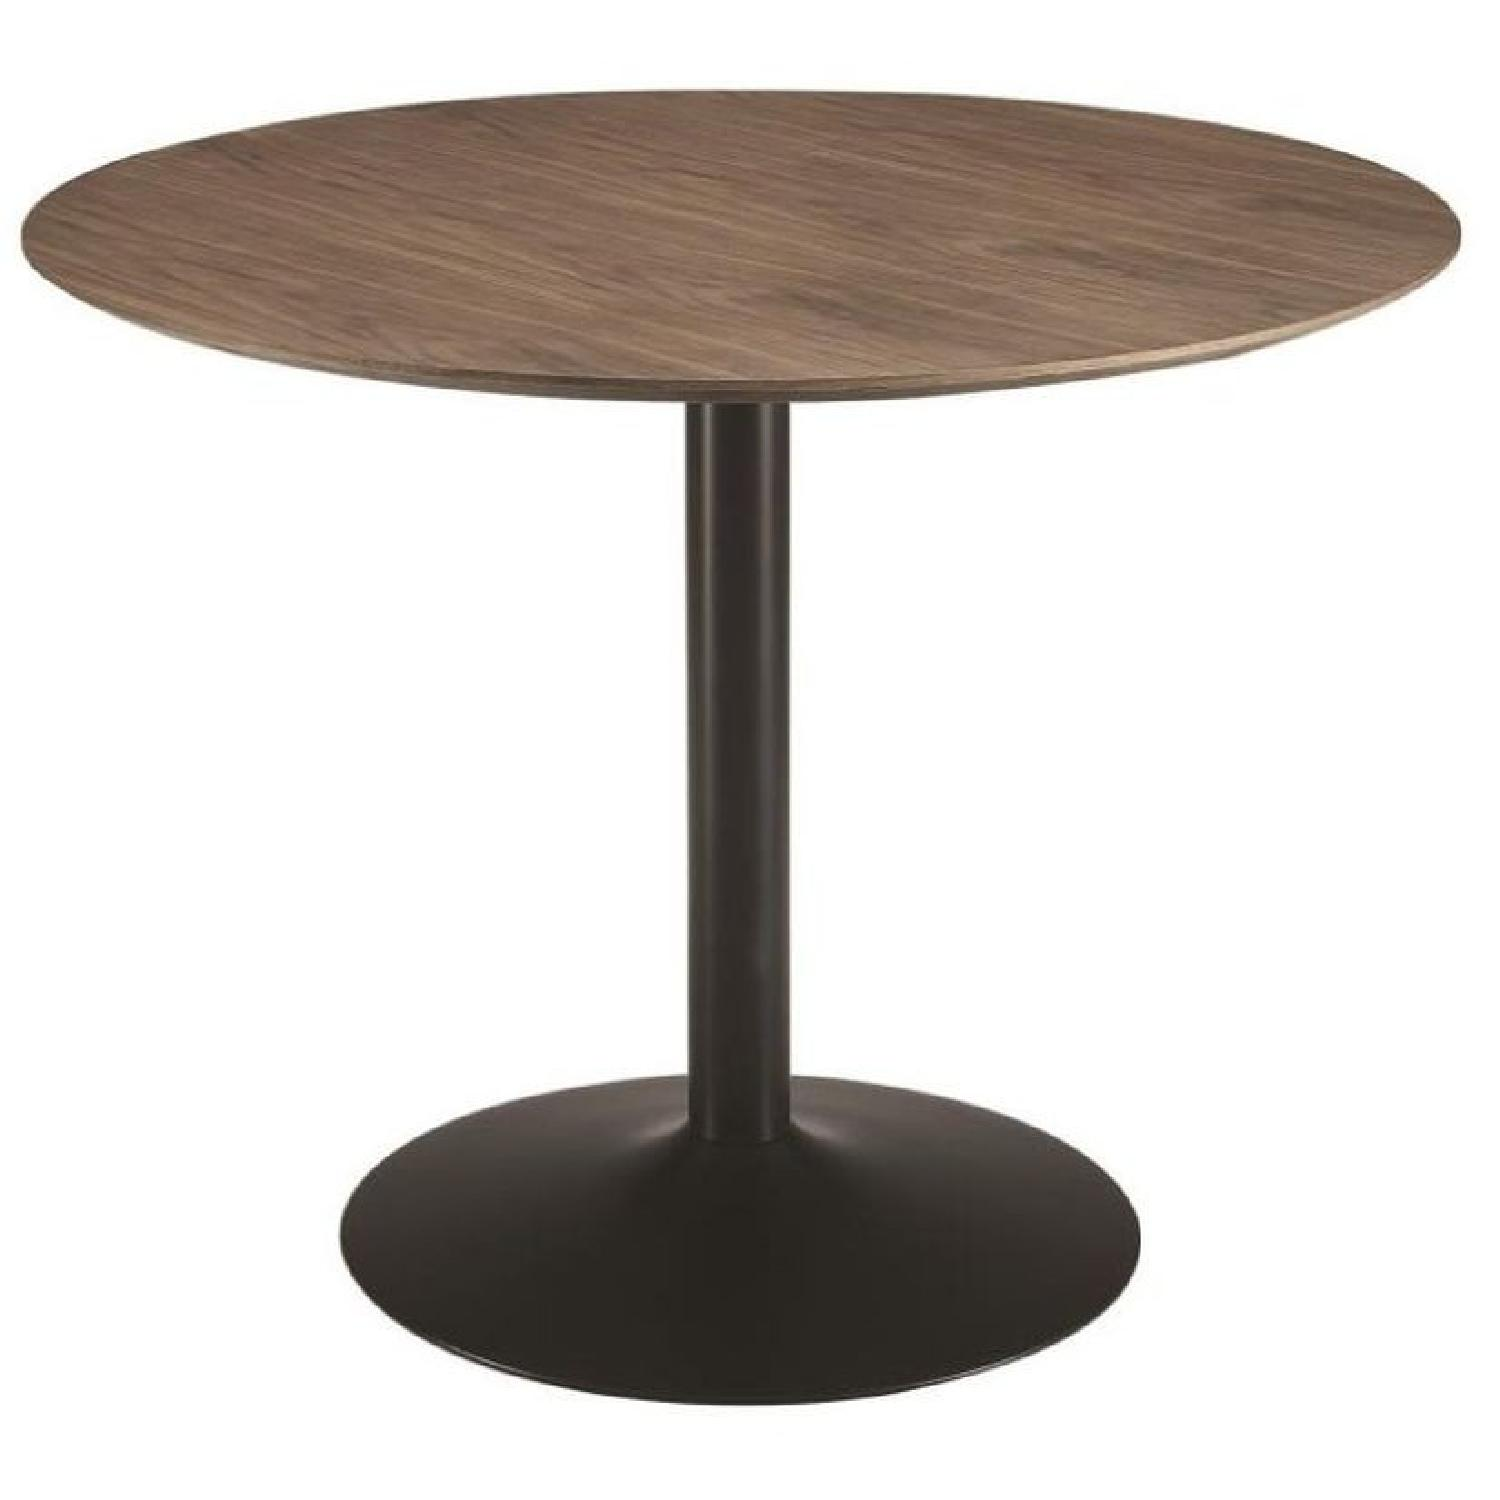 Mid Century Modern Style Dining Table in High Gloss Finish - image-5